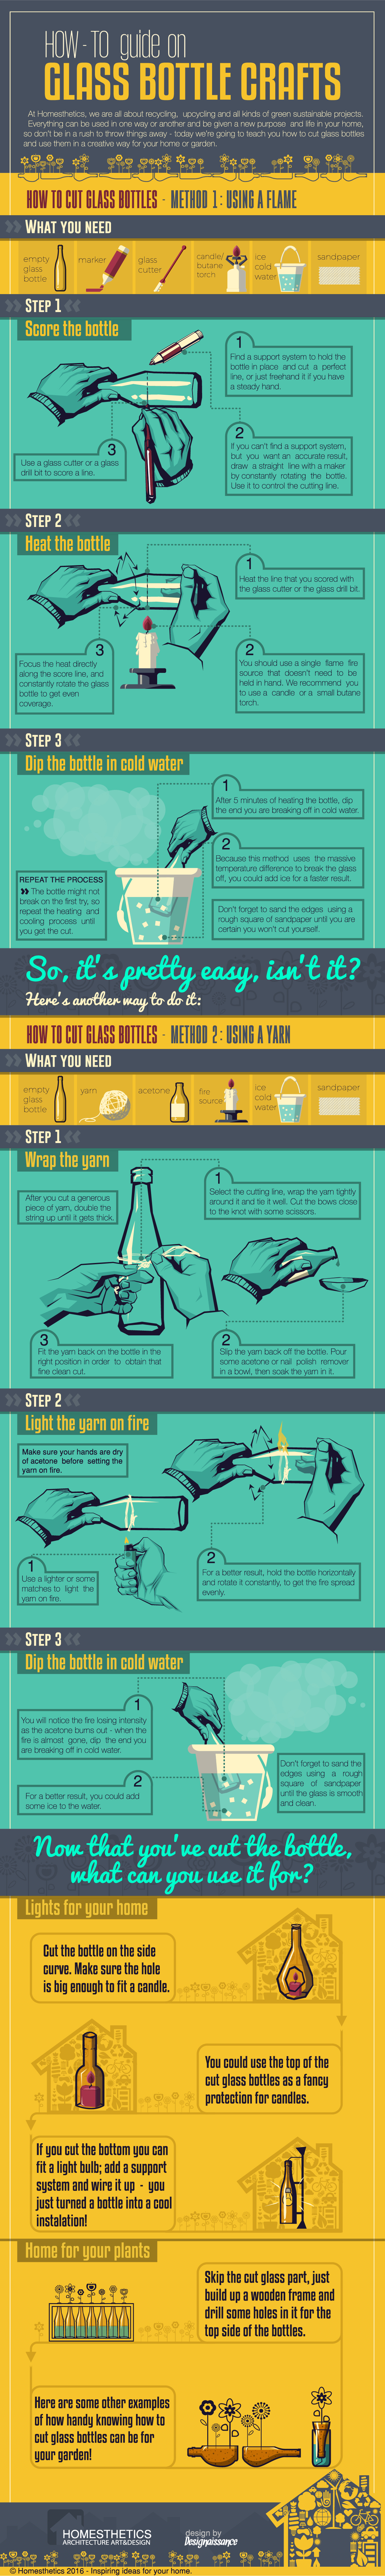 Glass Bottle Crafts Infographic